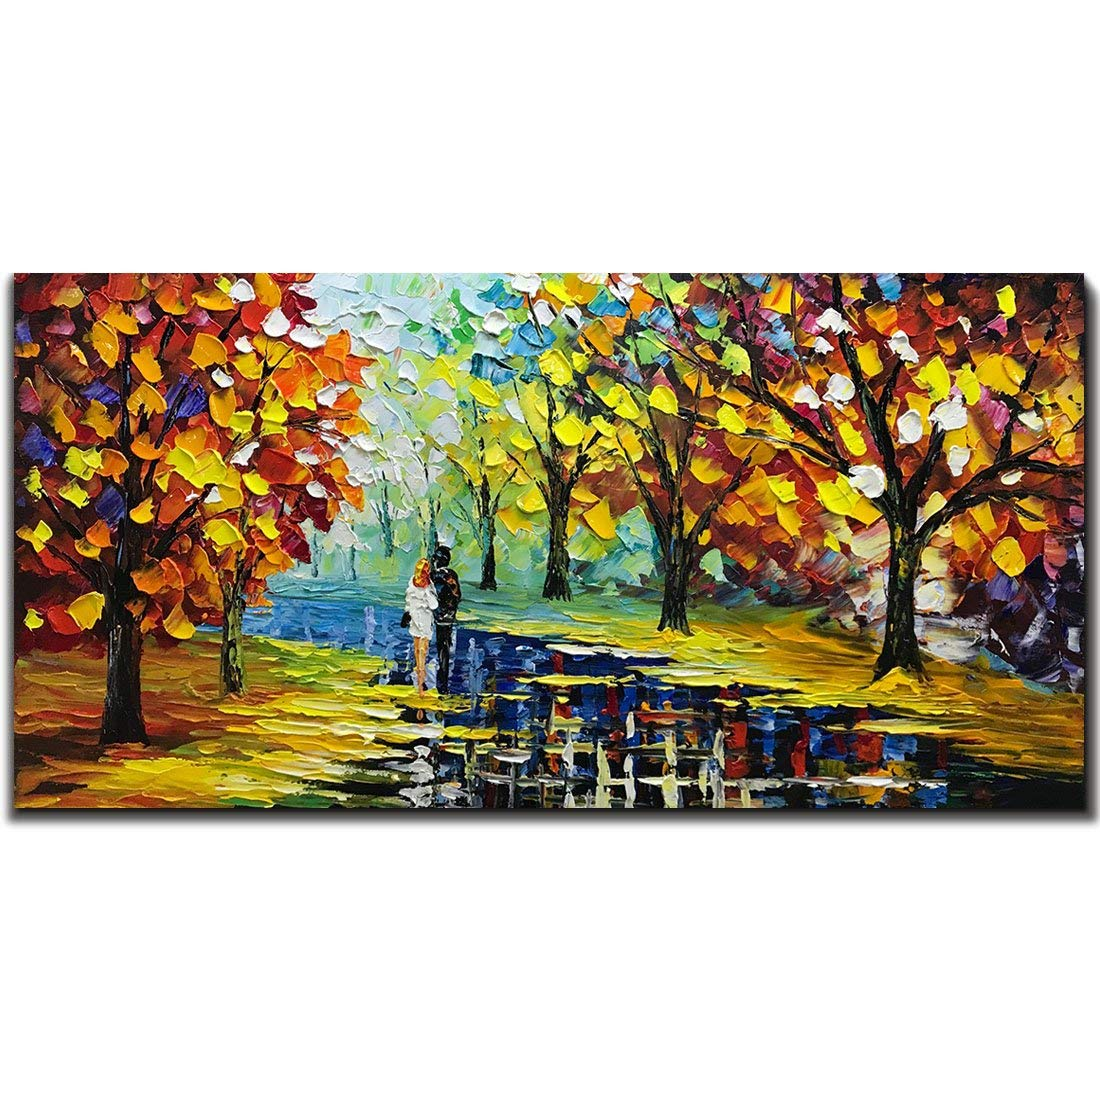 Fasdi-ART Paintings, 24x48 Inch Paintings, Love in the Forest Oil Hand Painting Painting 3D Hand-Painted On Canvas Abstract Artwork Art Wood Inside Framed Hanging Wall Decoration Abstract Painting